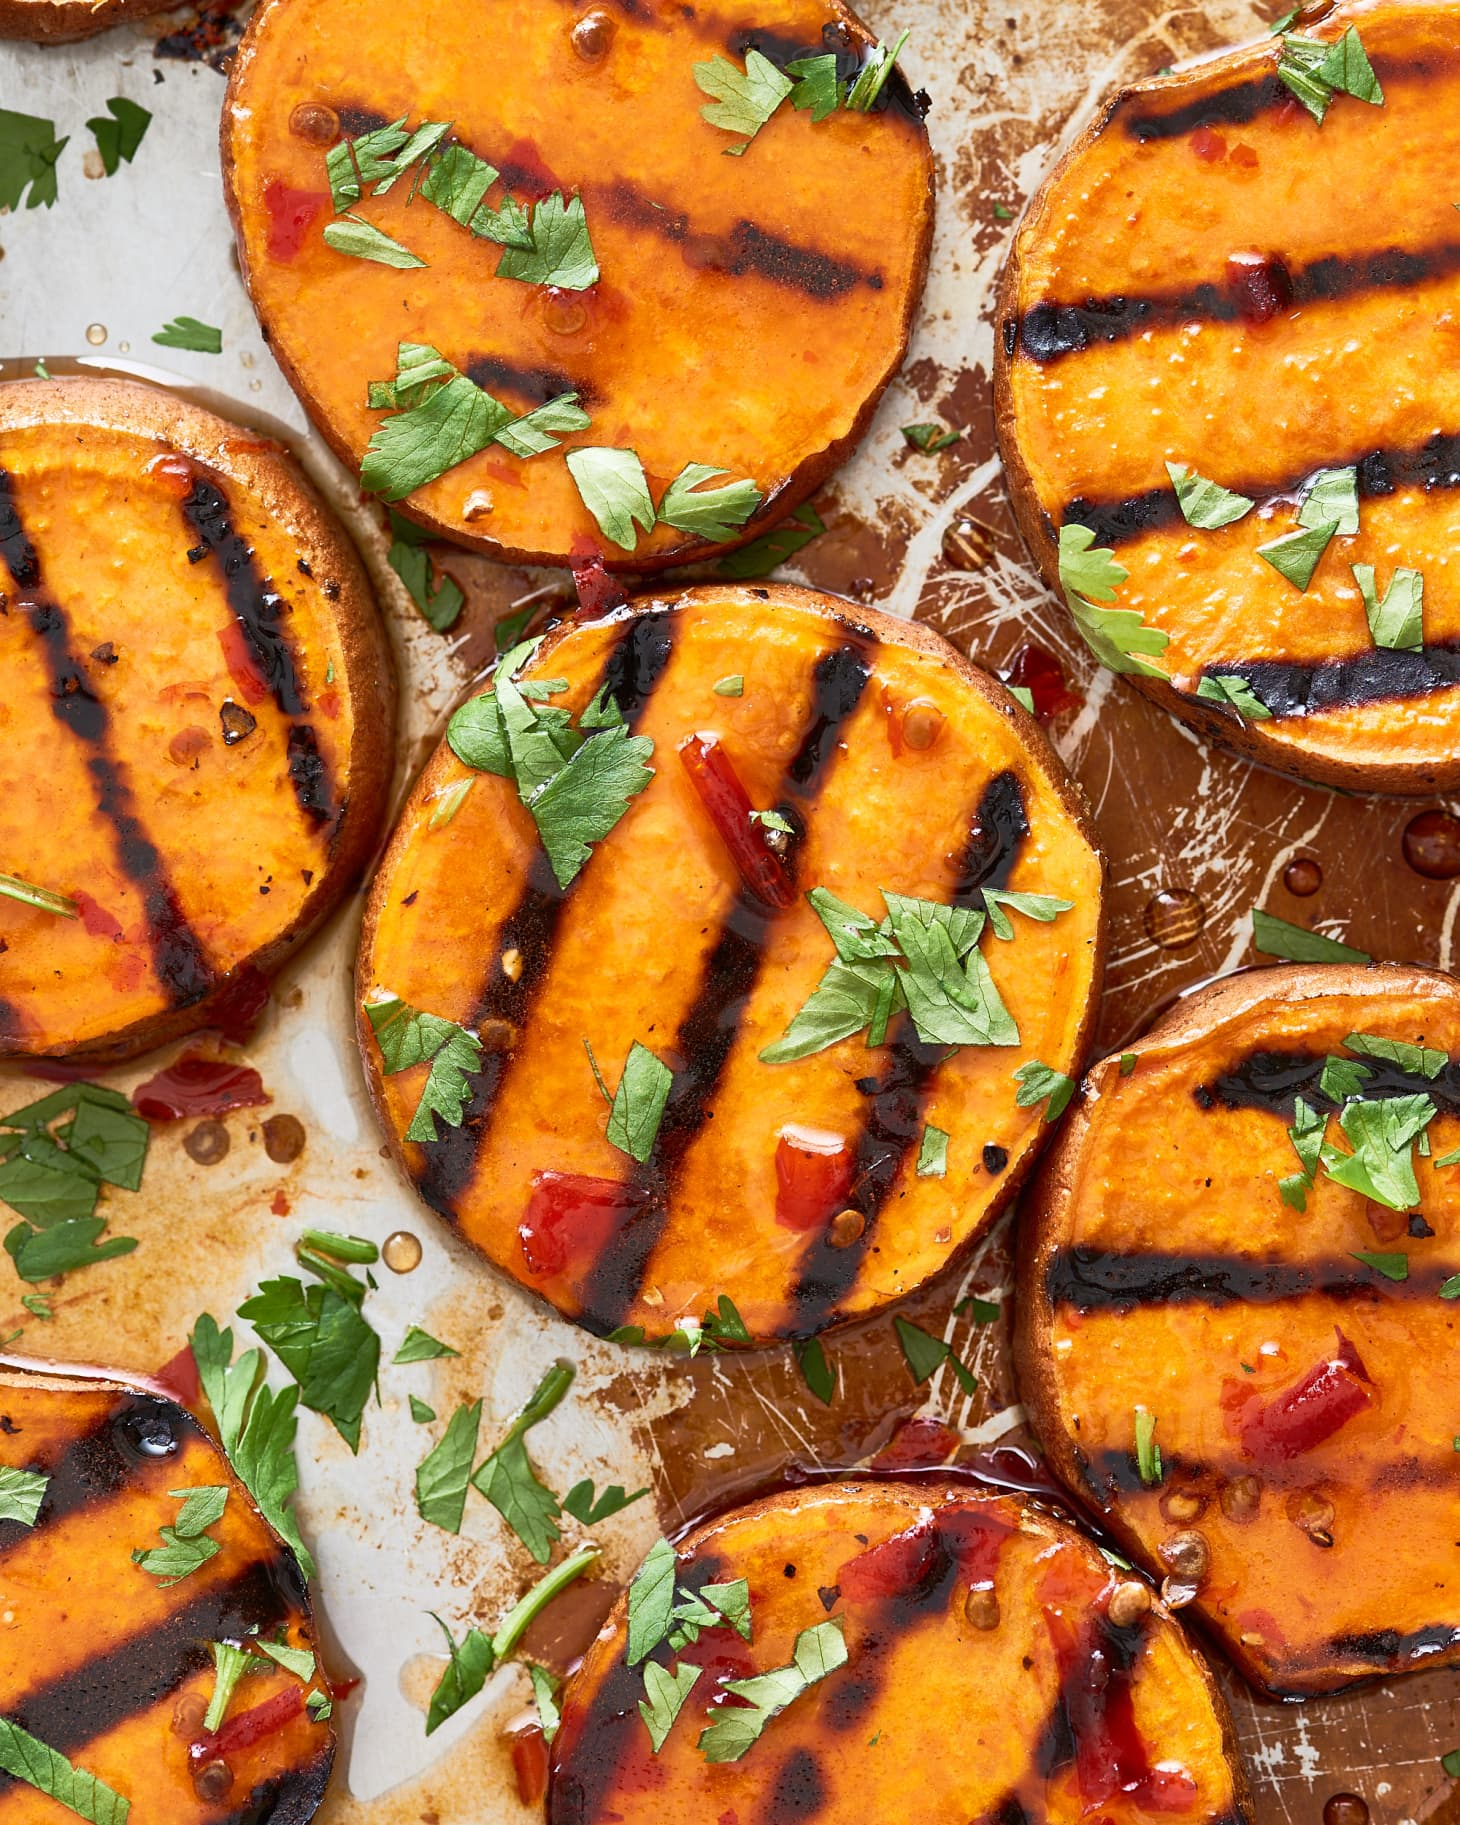 30 Best Bbq Side Dishes Healthy Sides For Grilled Foods Kitchn